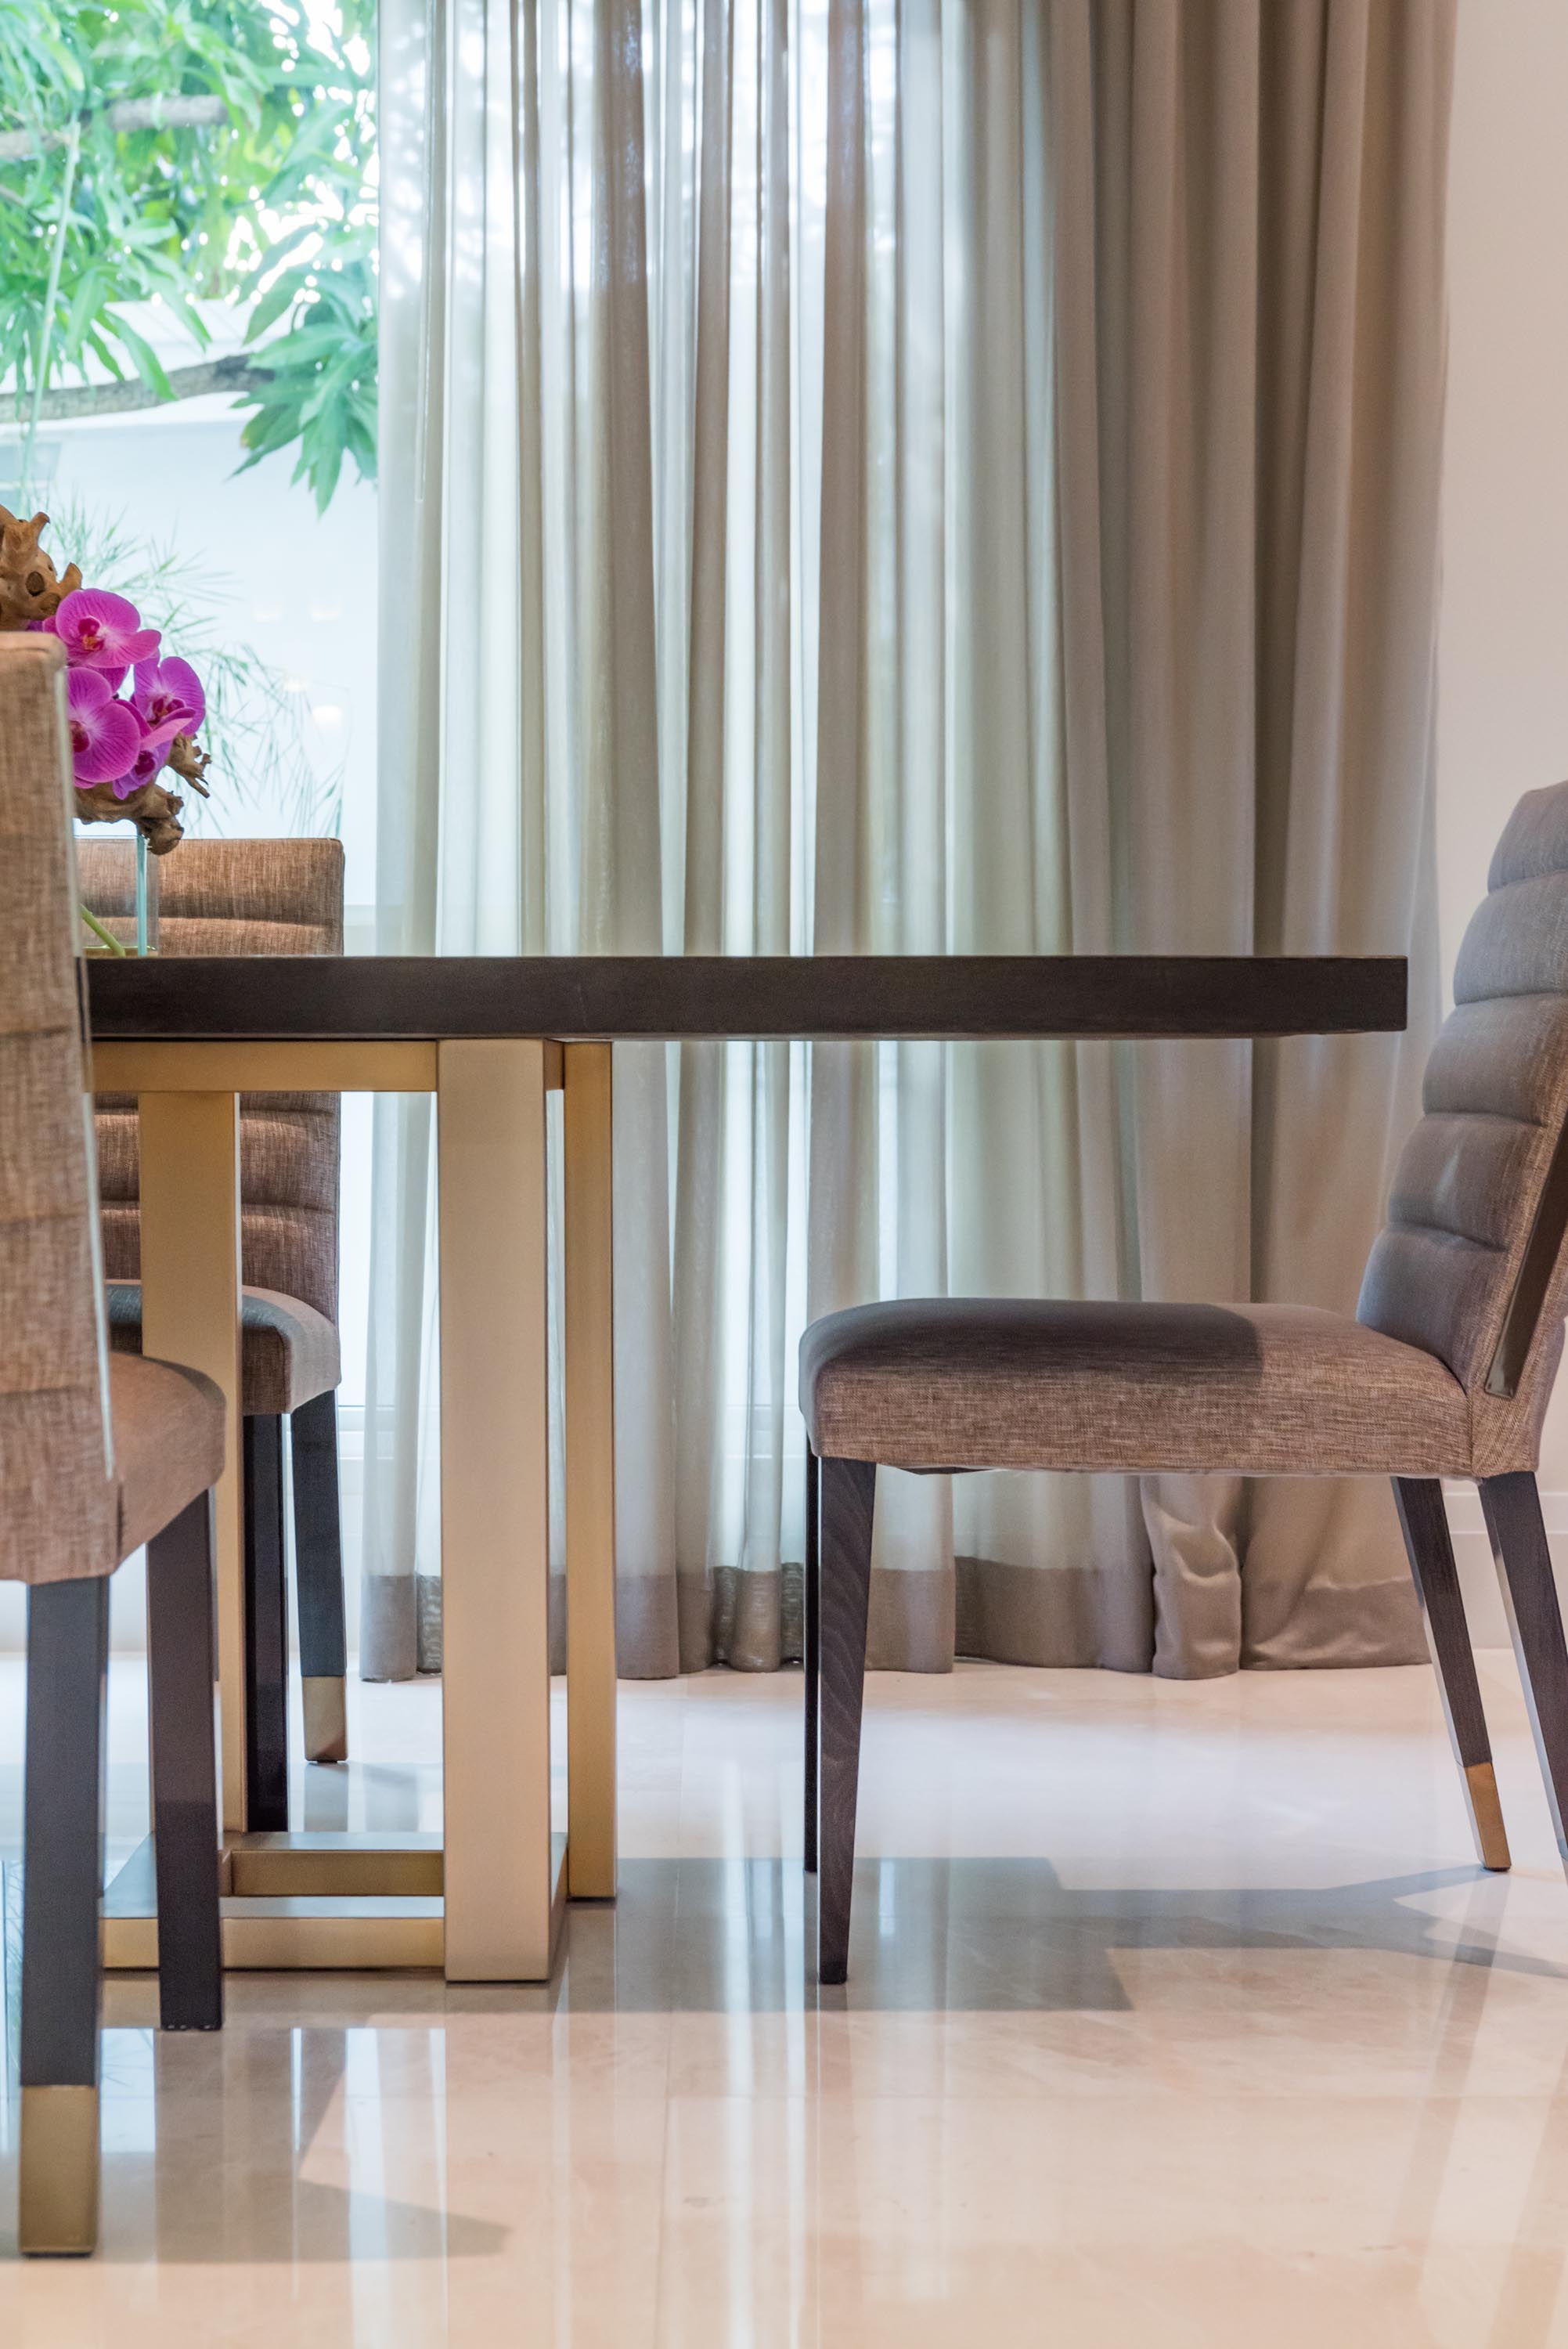 Dining room detail with wooden table and soft seat chairs